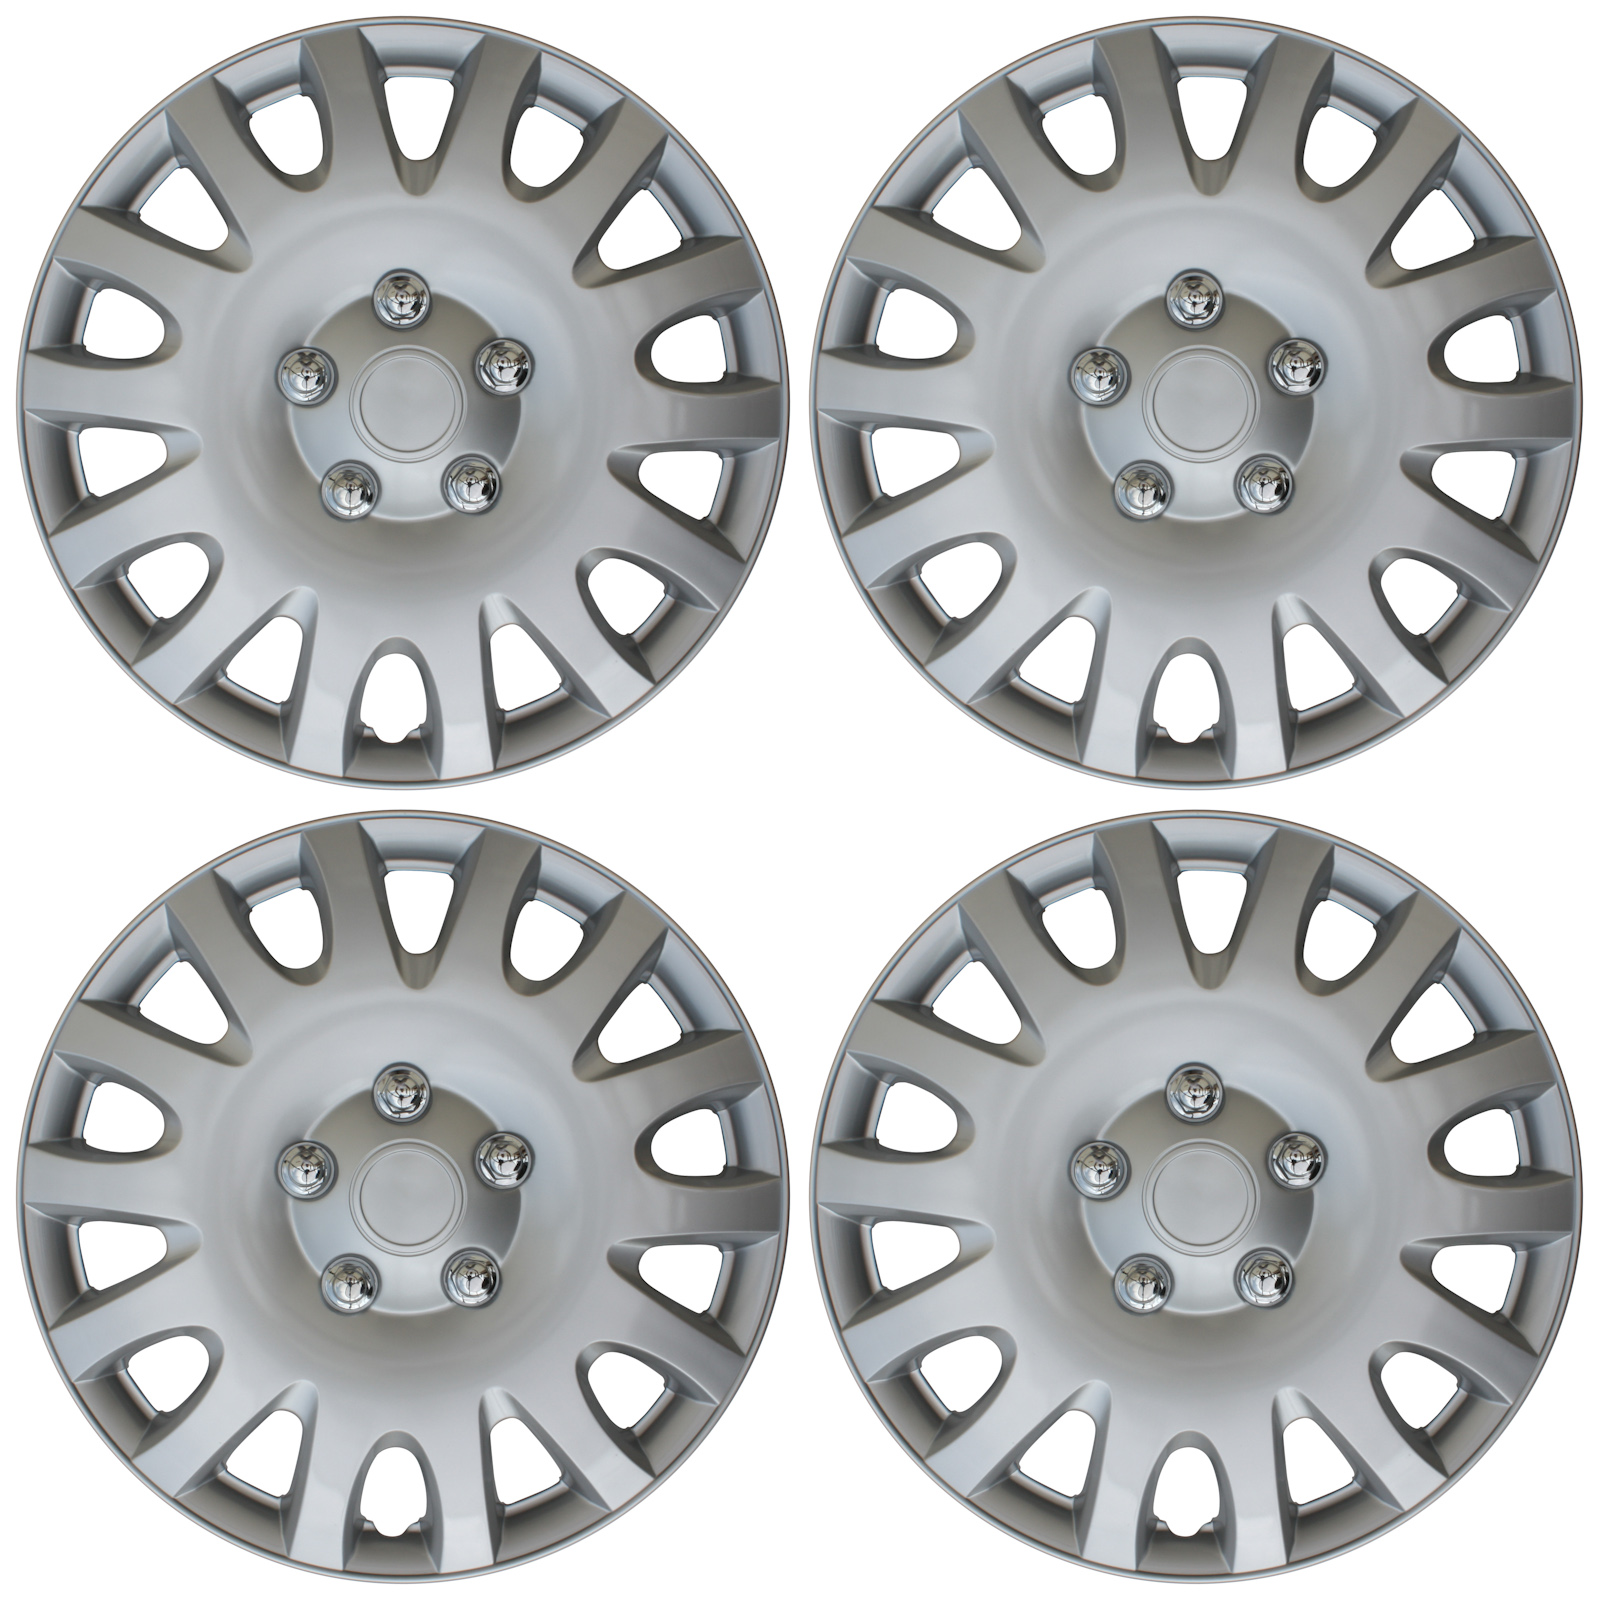 """4 Pc Set of 16"""" Inch ABS Silver Hub Caps Wheel Cover for OEM Steel Rim Caps"""